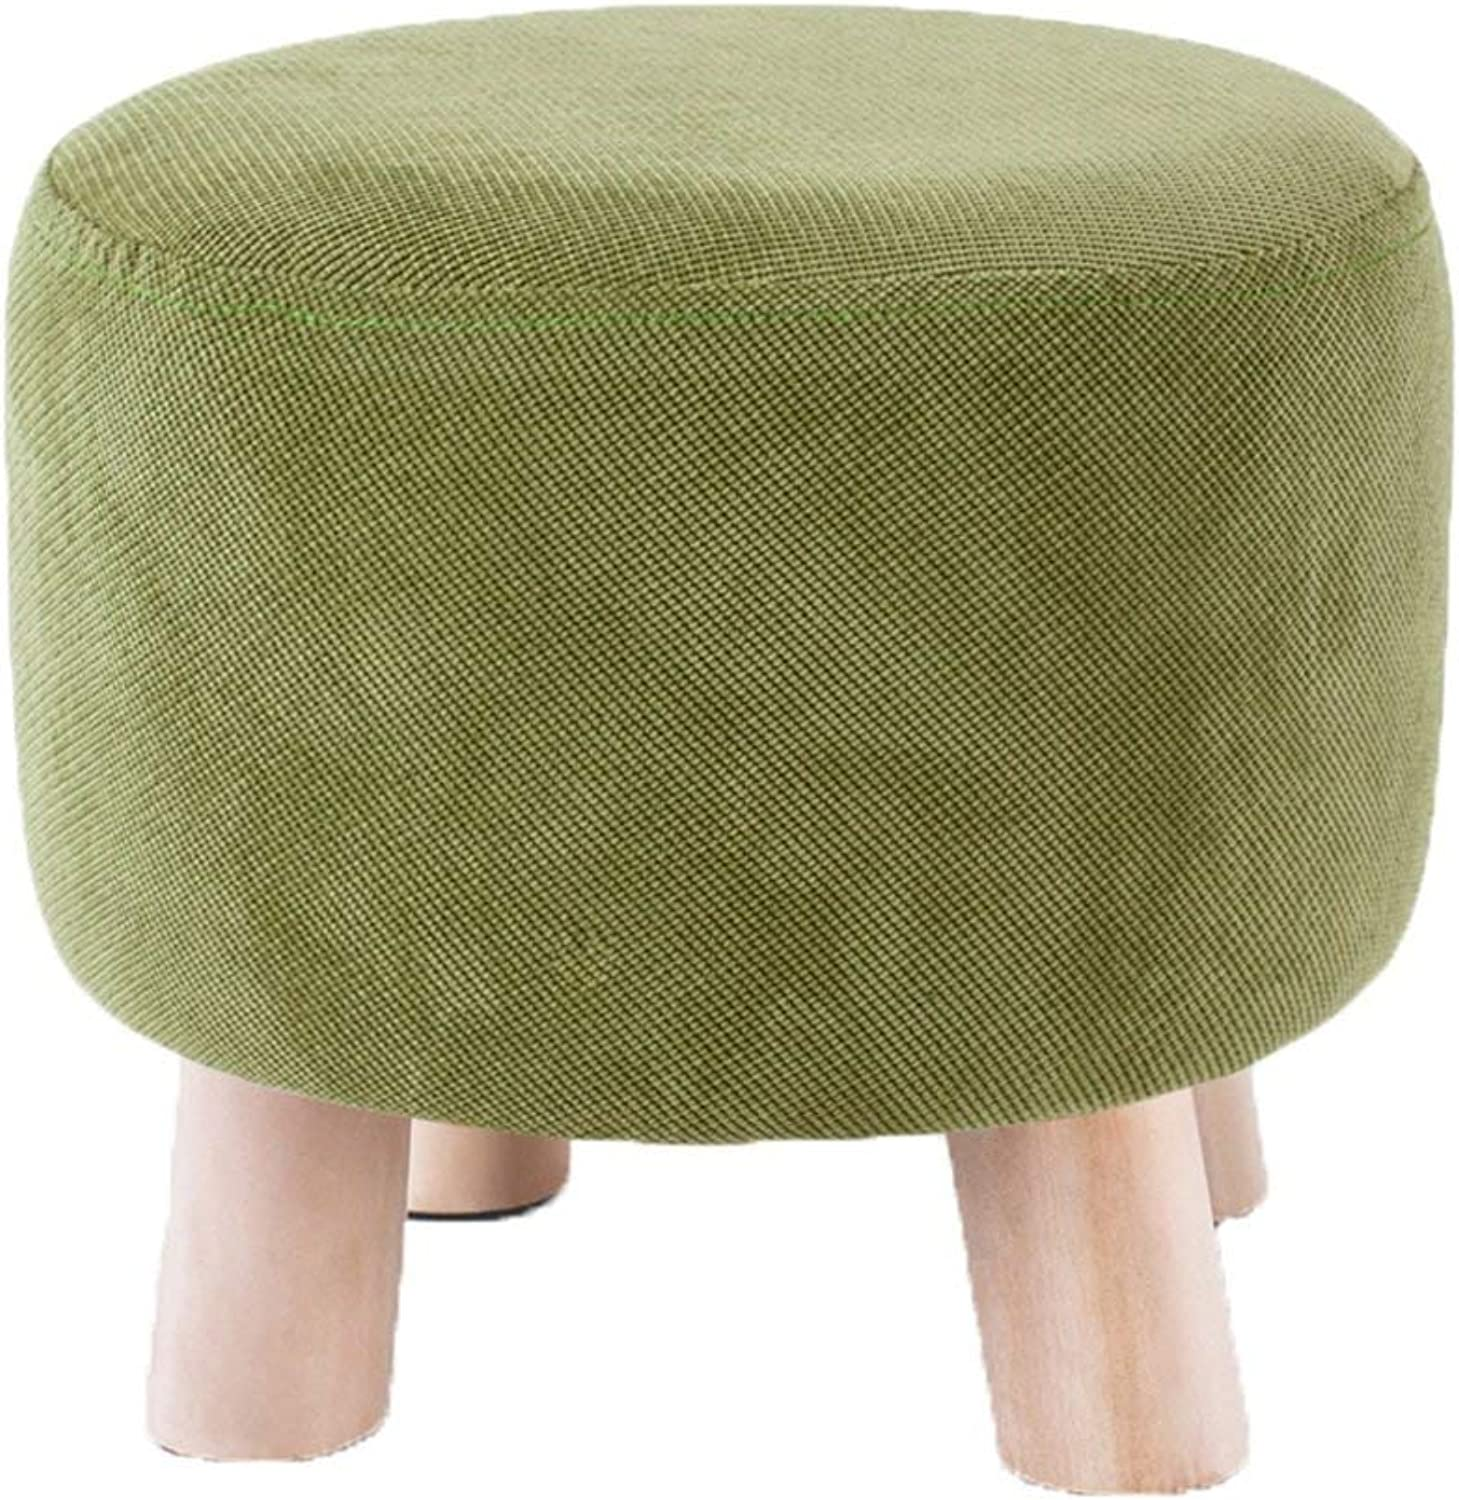 GJD Small Stool, Solid Wood Stool, shoes Bench, Stool, Sofa, Chair, Coffee Table, pier - Small Stool (color   D)